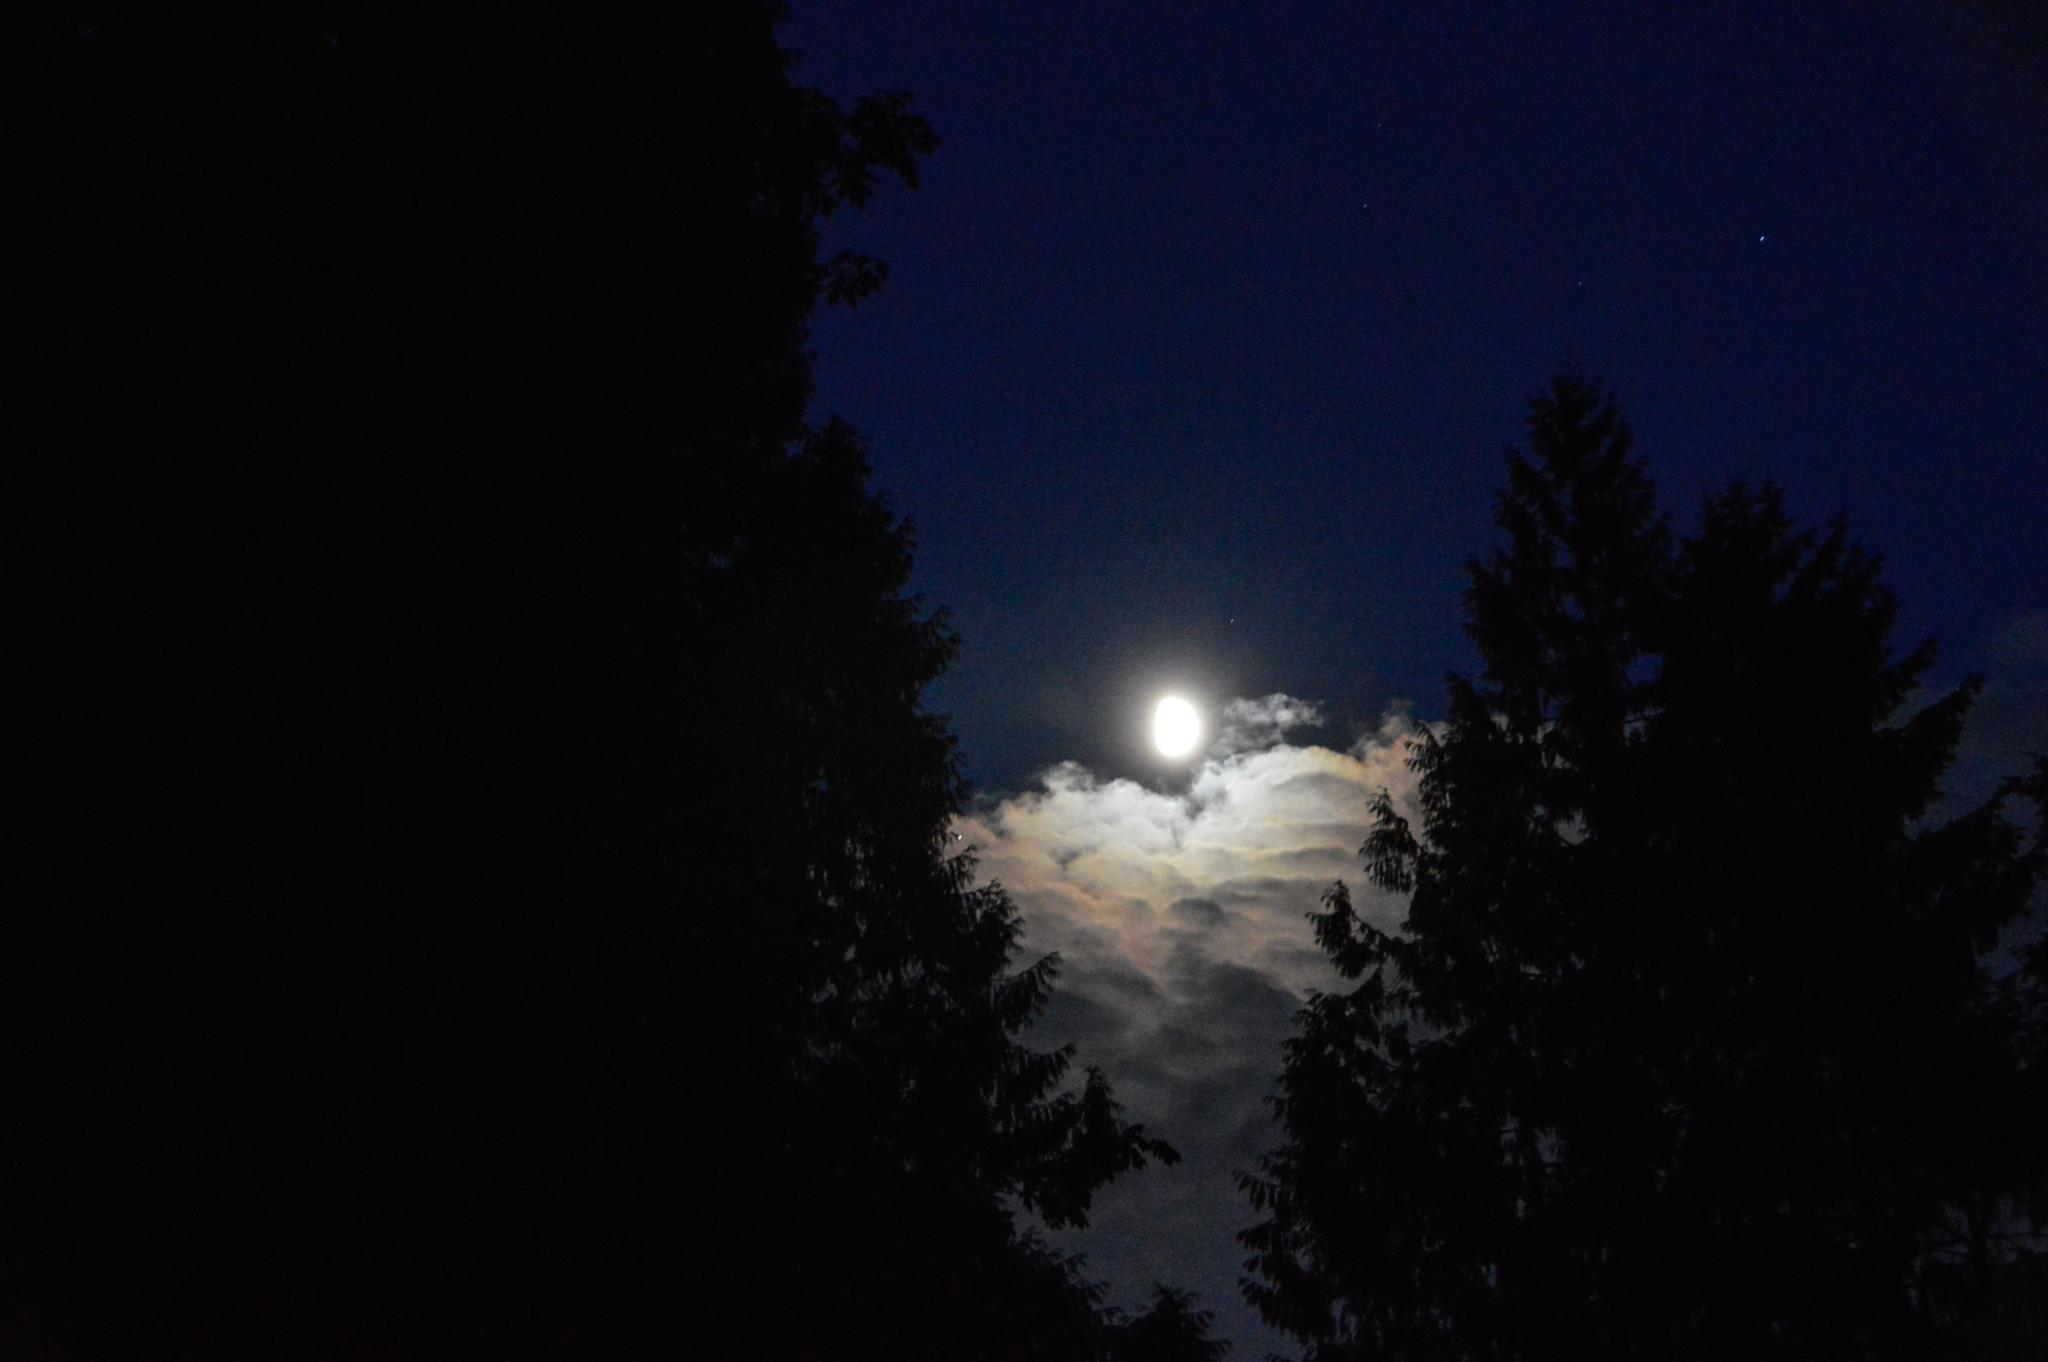 Moonlight Reflection On The Clouds by jan.noblitt